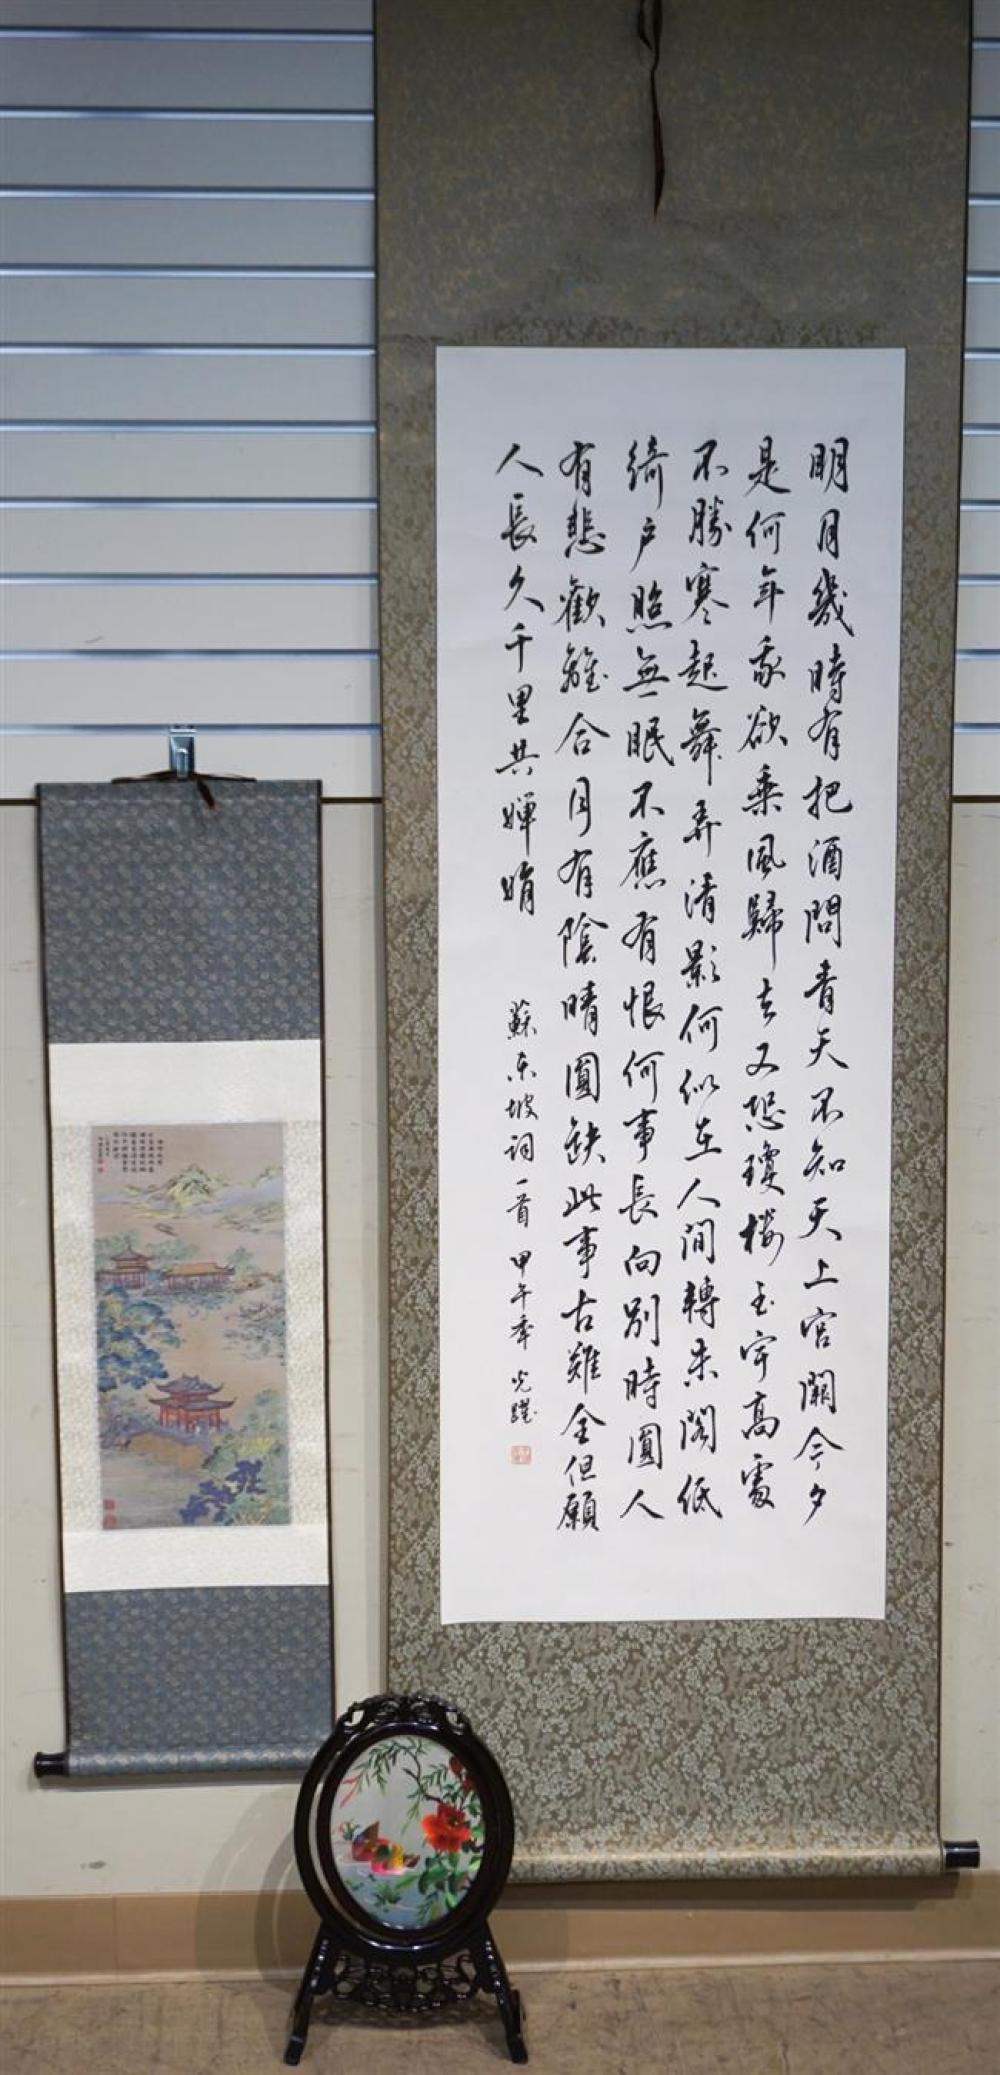 Chinese Embroidered Silk Hanging Scroll, a Chinese Calligraphy Hanging Scroll and a Embroidered Table Screen